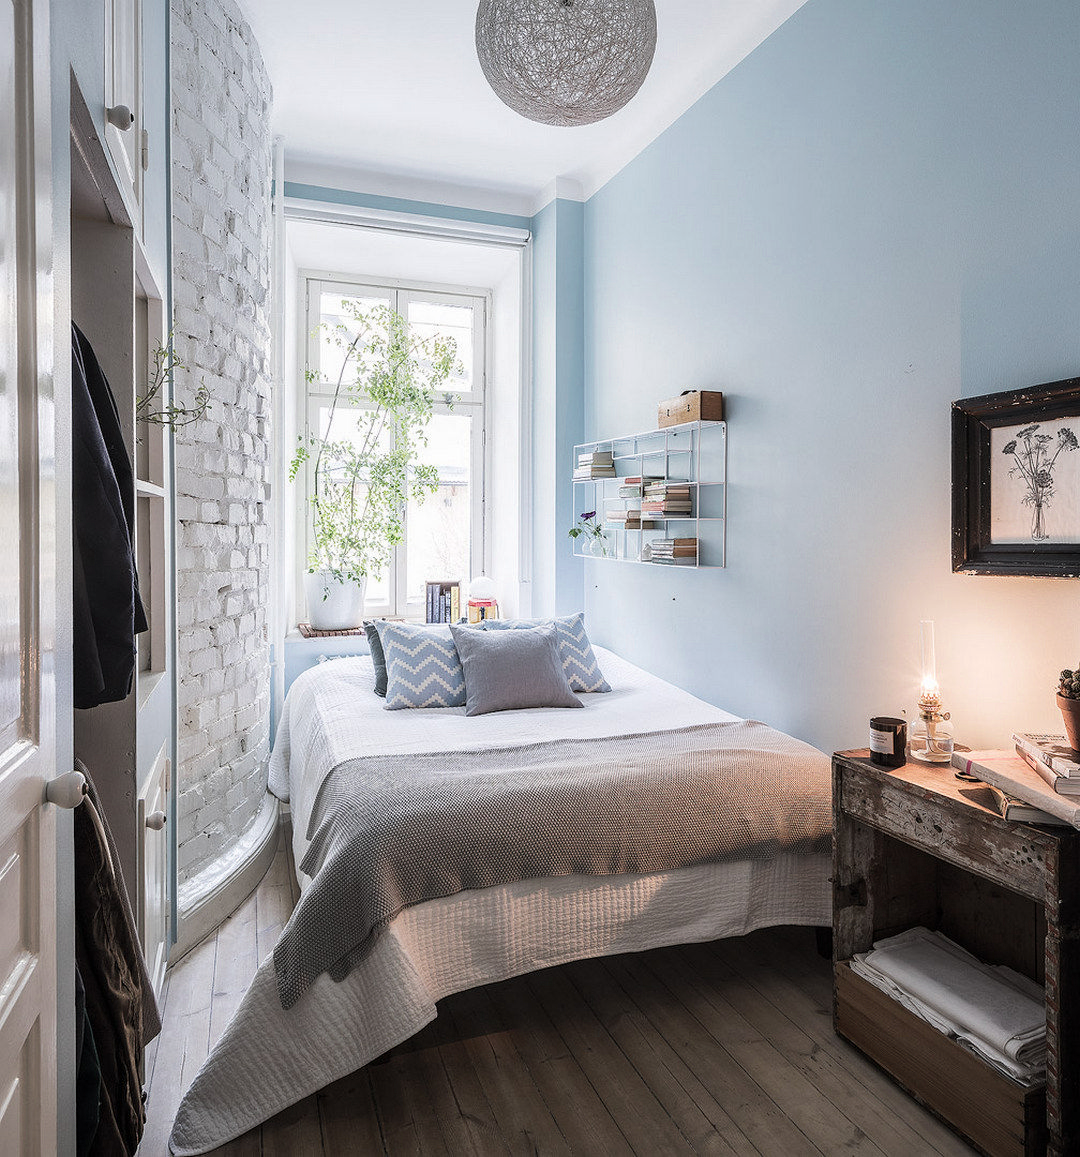 Etonnant 58 Pretty Blue Bedroom Decoration Inspirations  Https://www.futuristarchitecture.com/16977 Blue Bedroom.html